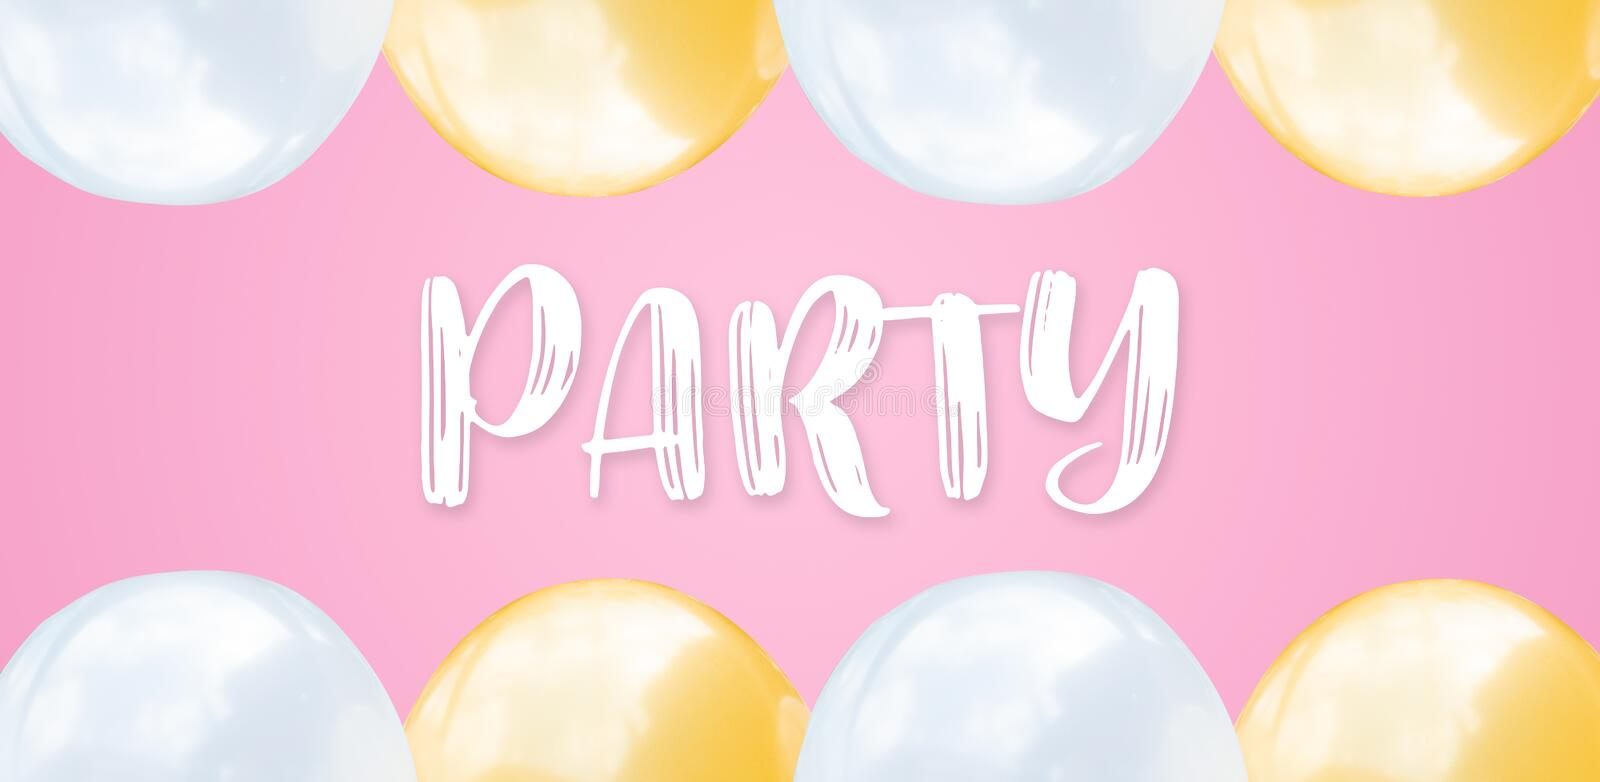 Abstract flat lay pink and white balloons on pastel pink wide background with text concept for Happy birthday party, empty space royalty free stock photo